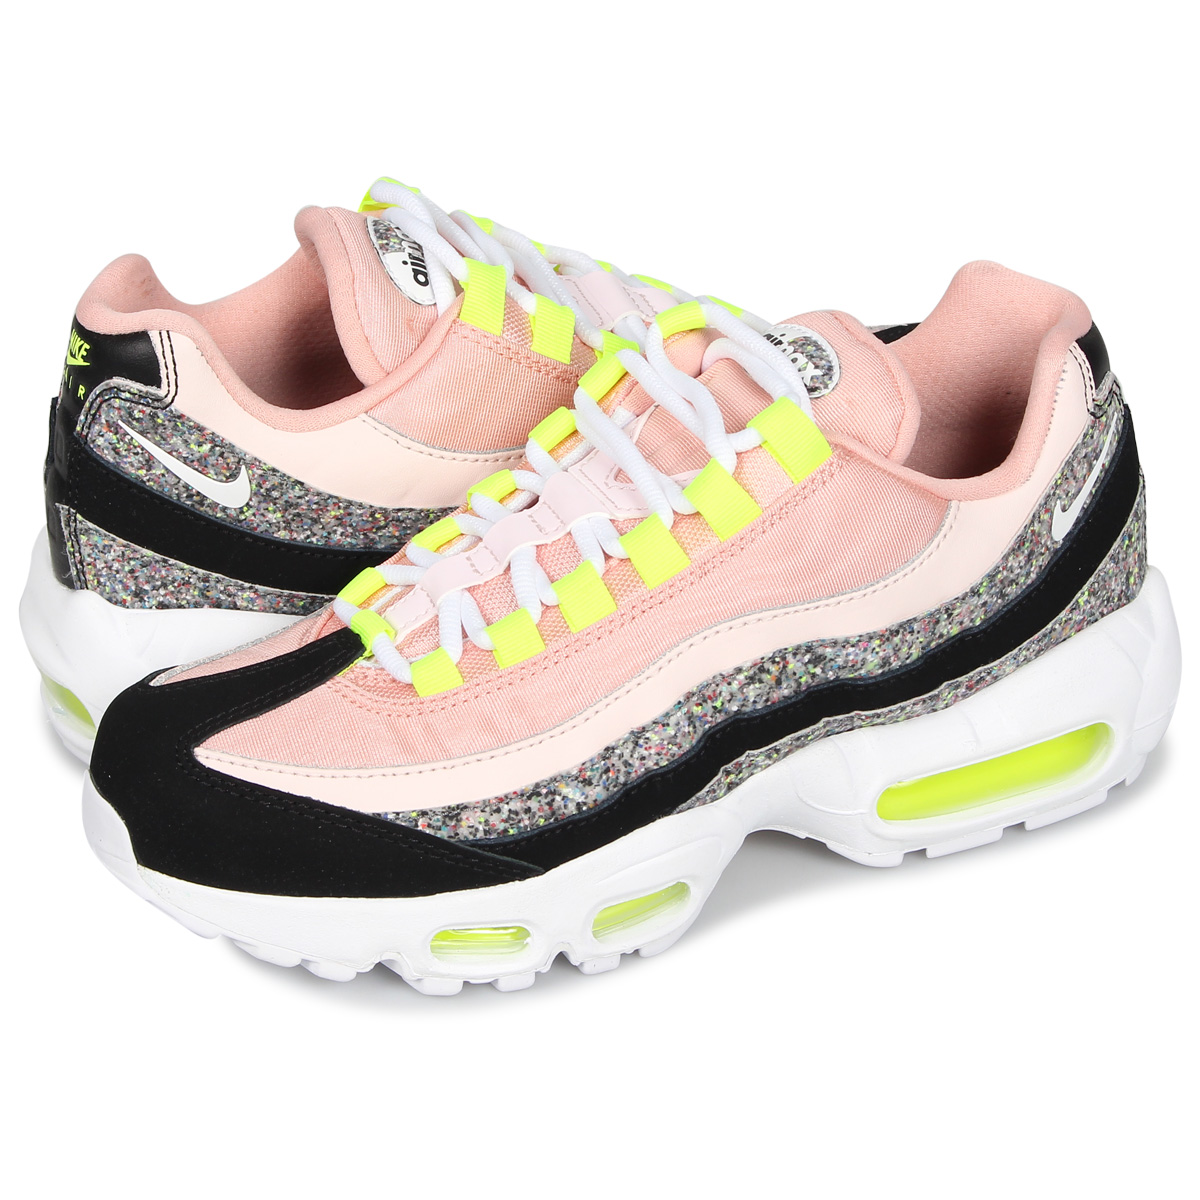 Nike NIKE Air Max 95 sneakers Lady's WMNS AIR MAX 95 white white 918,413 006